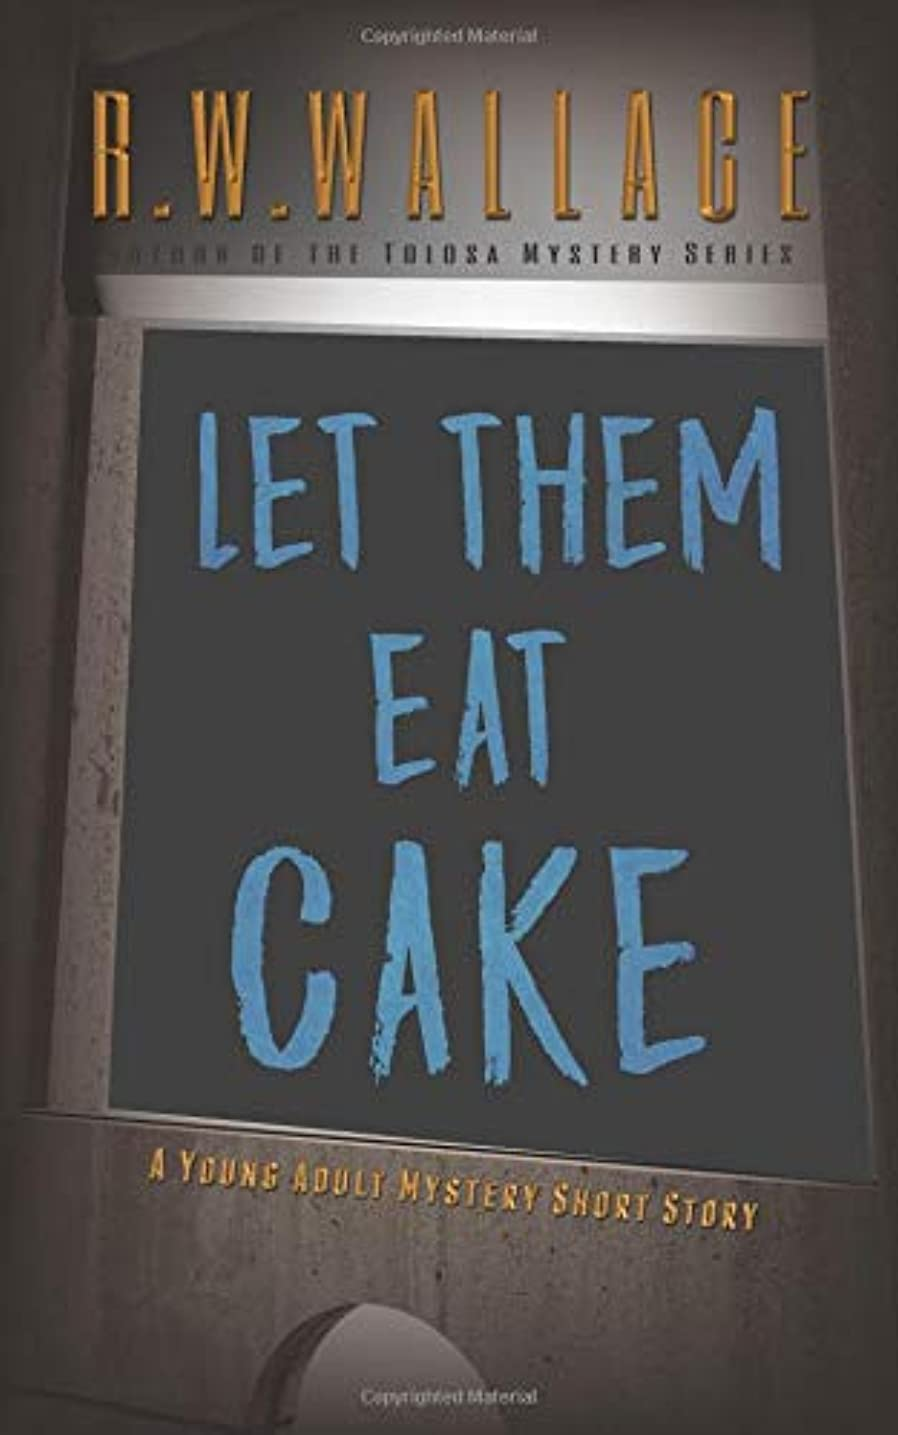 受け入れたまたね泣いているLet Them Eat Cake: A Young Adult Mystery Short Story